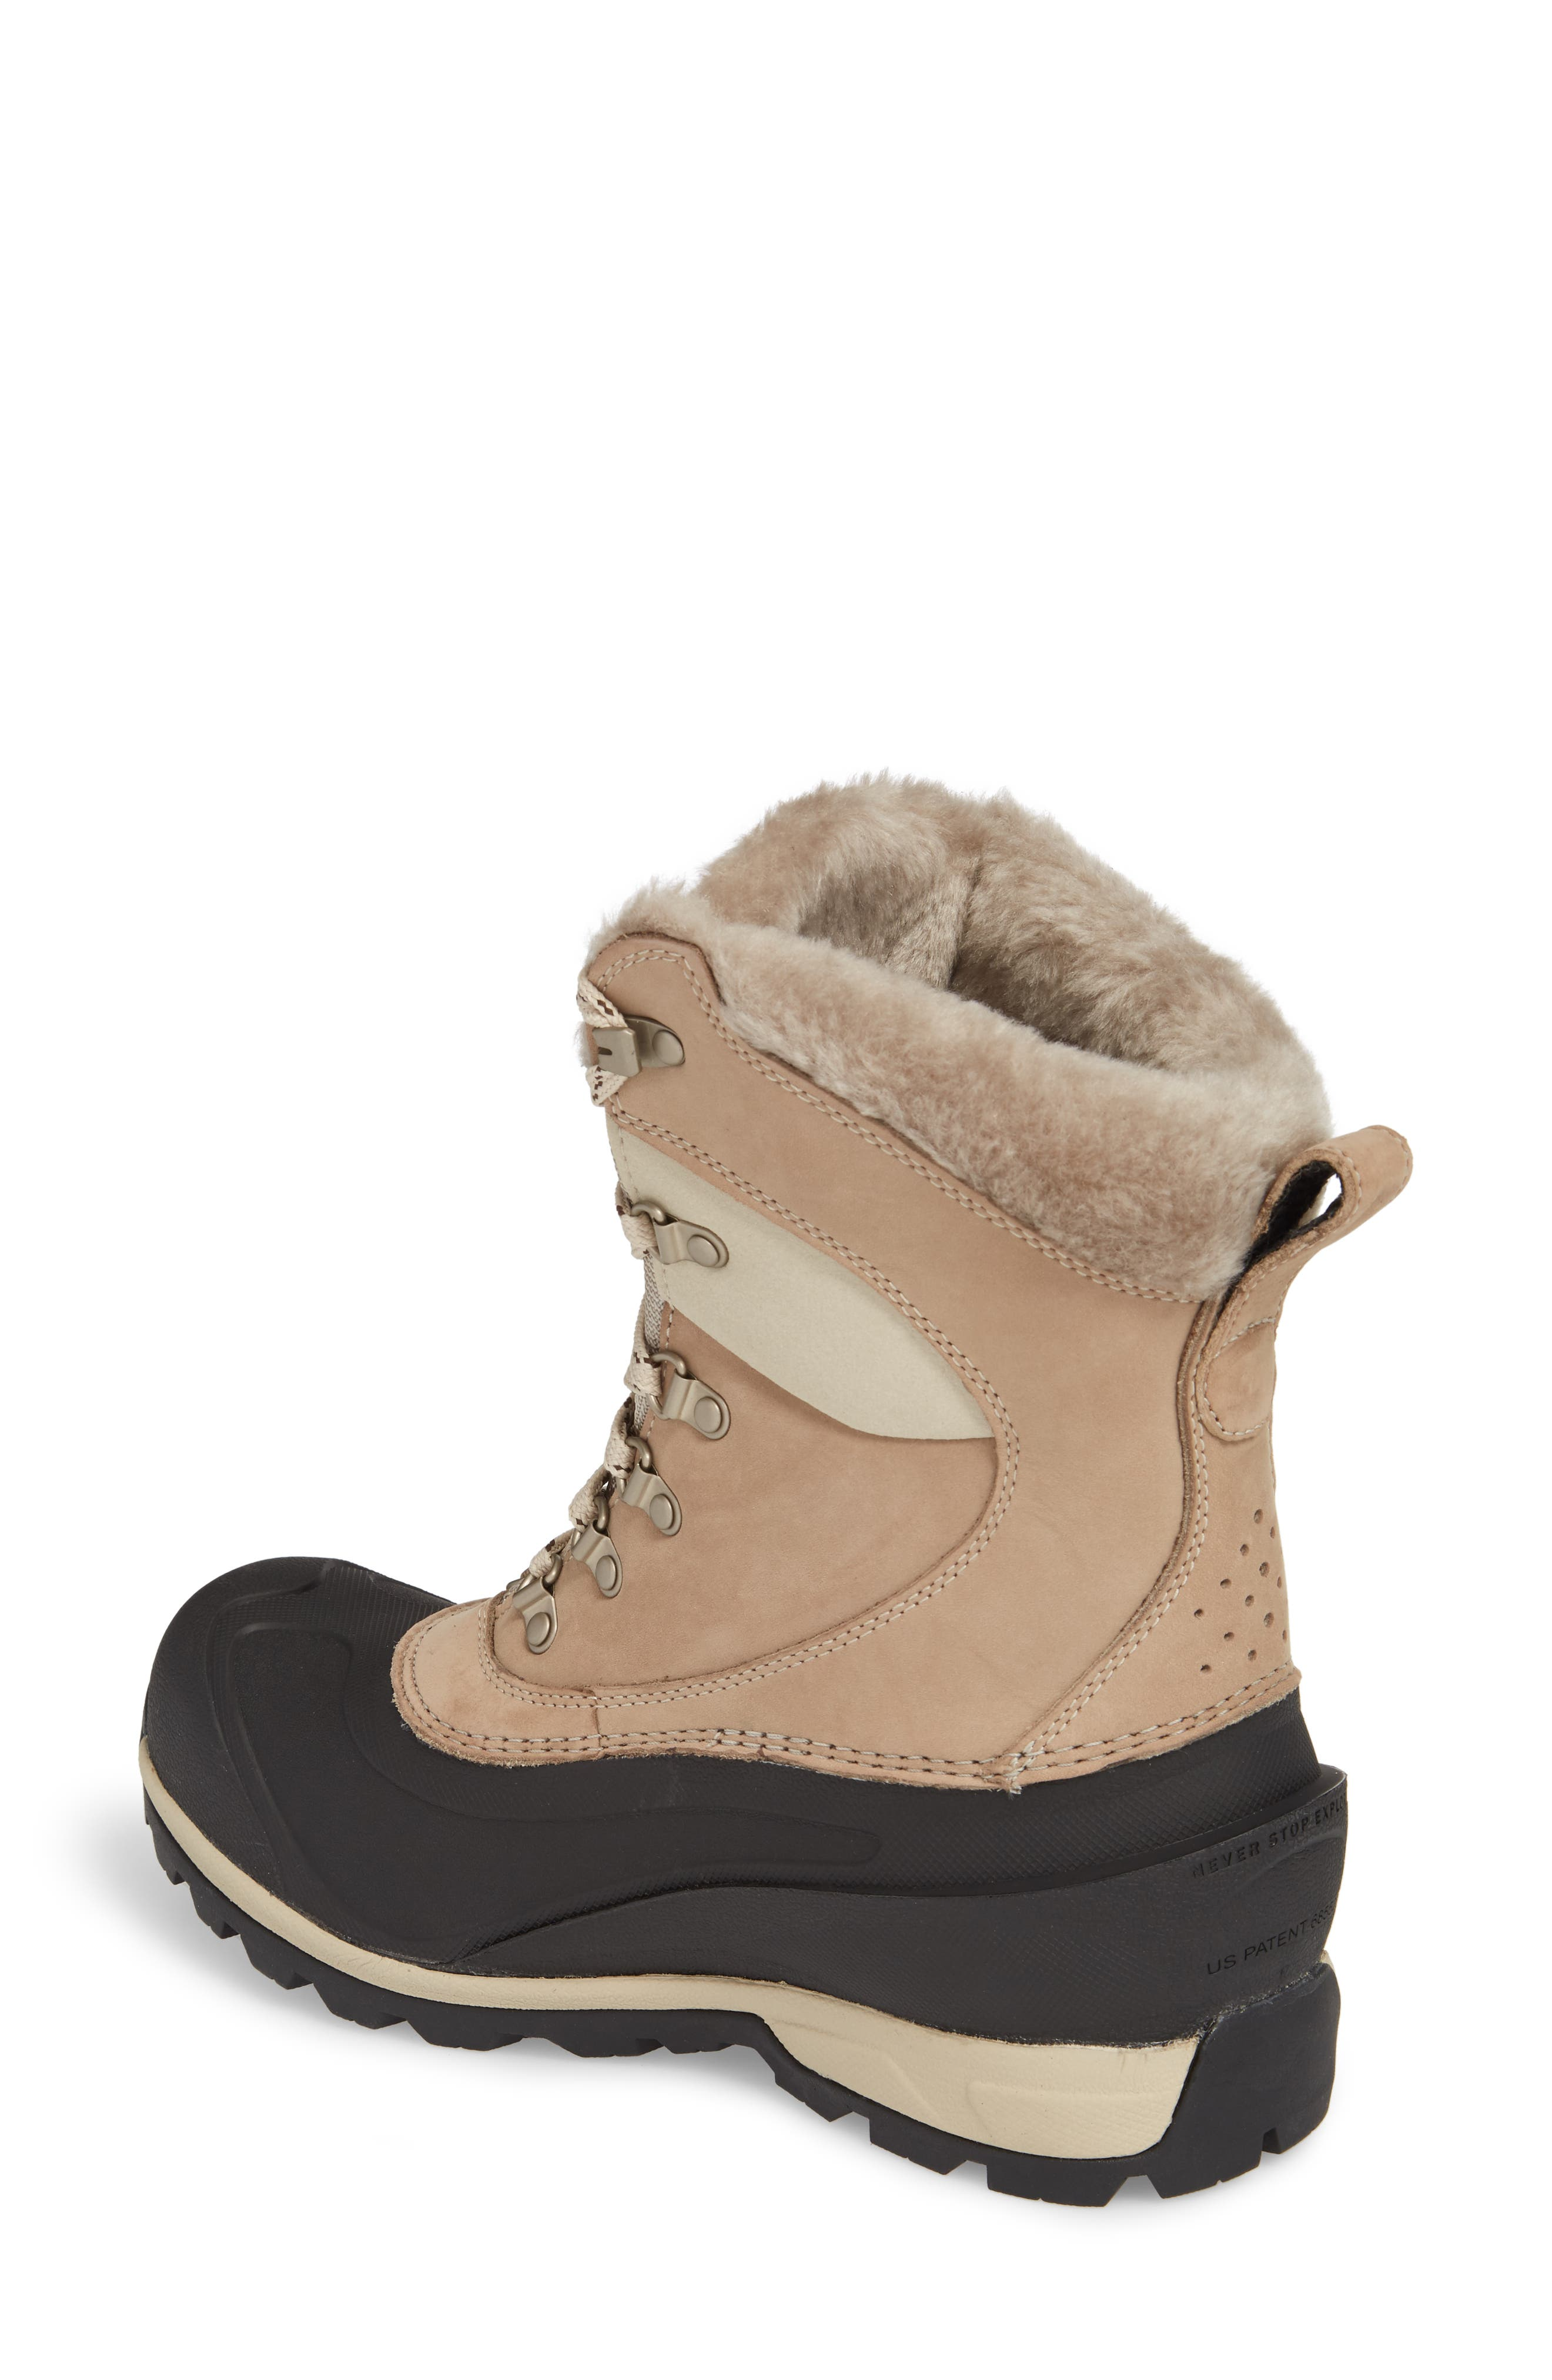 'Chilkat 400' Waterproof PrimaLoft<sup>®</sup> Insulated Boot,                             Alternate thumbnail 2, color,                             Simply Taupe Brown